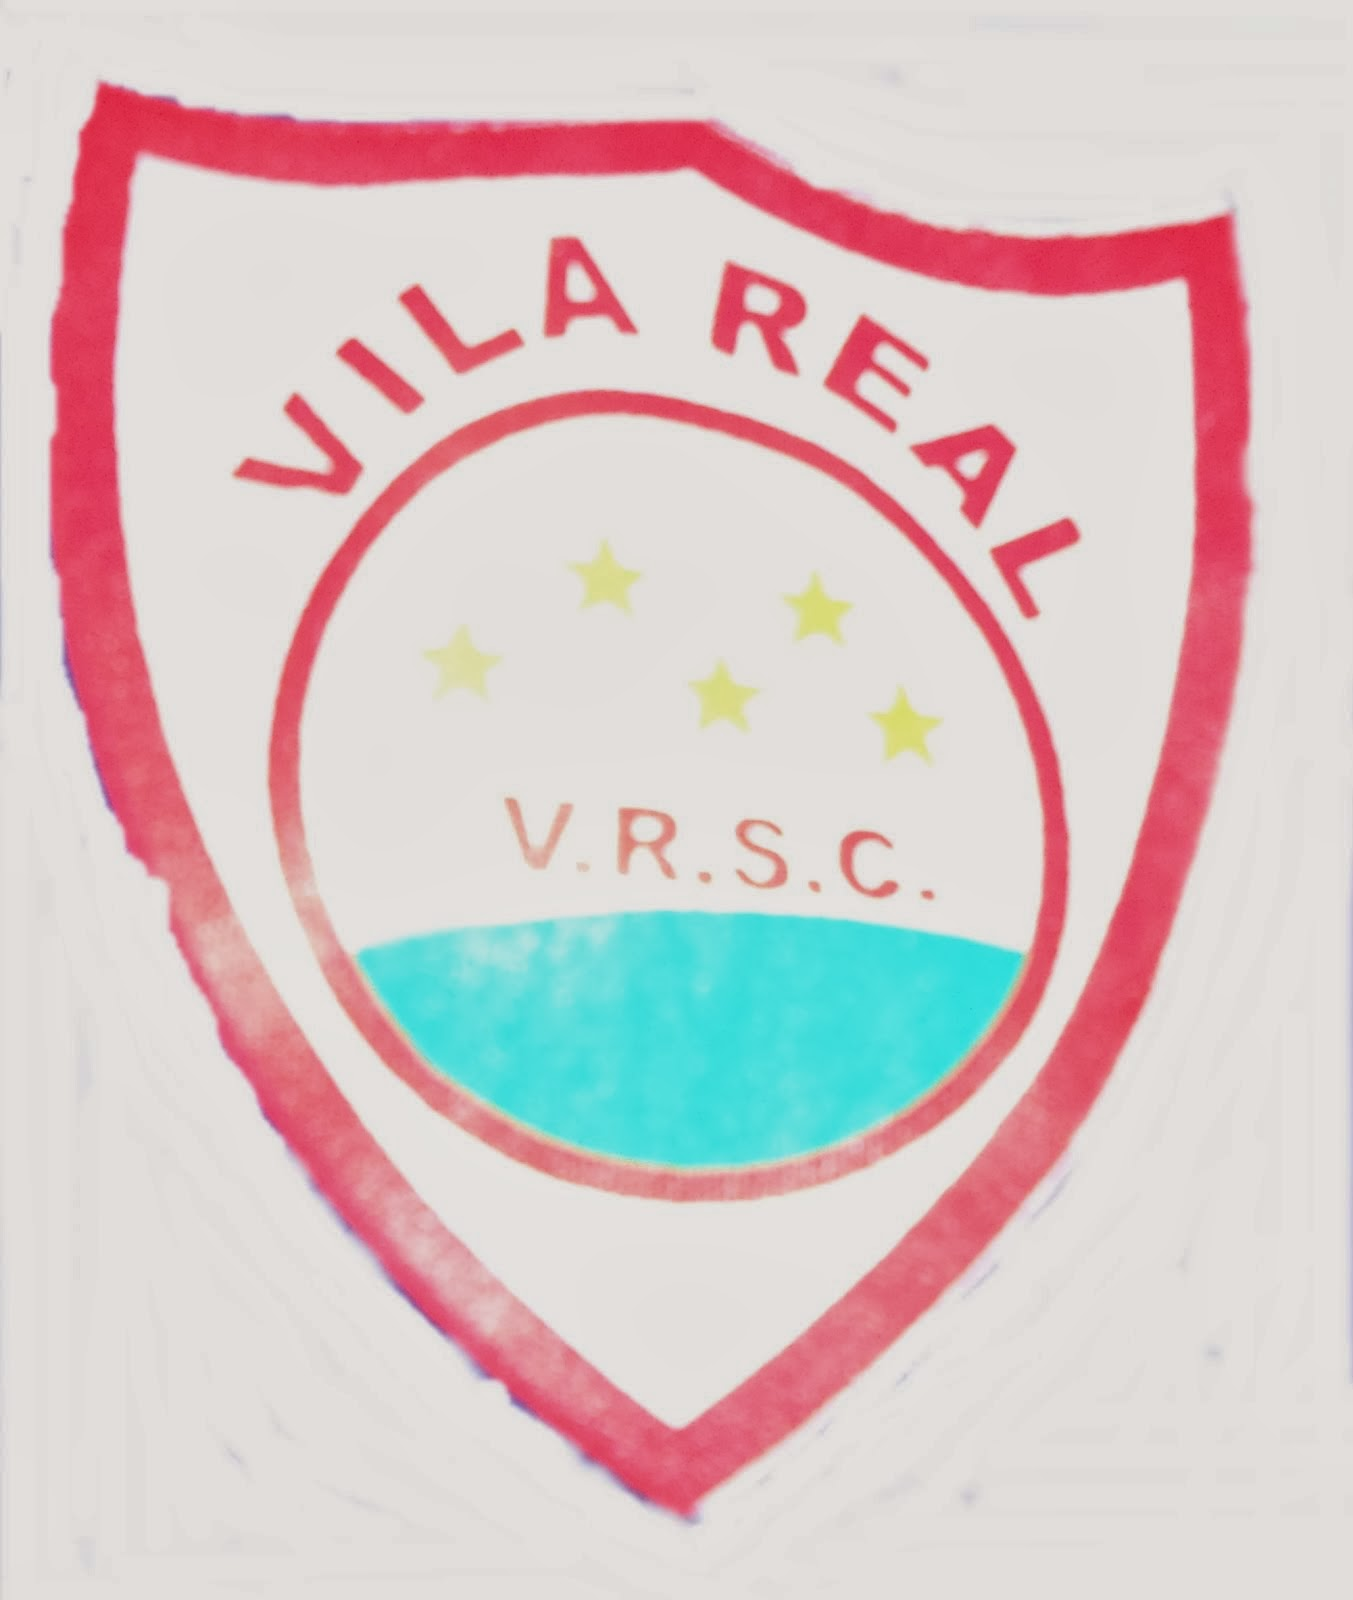 Vila Real do Araquém